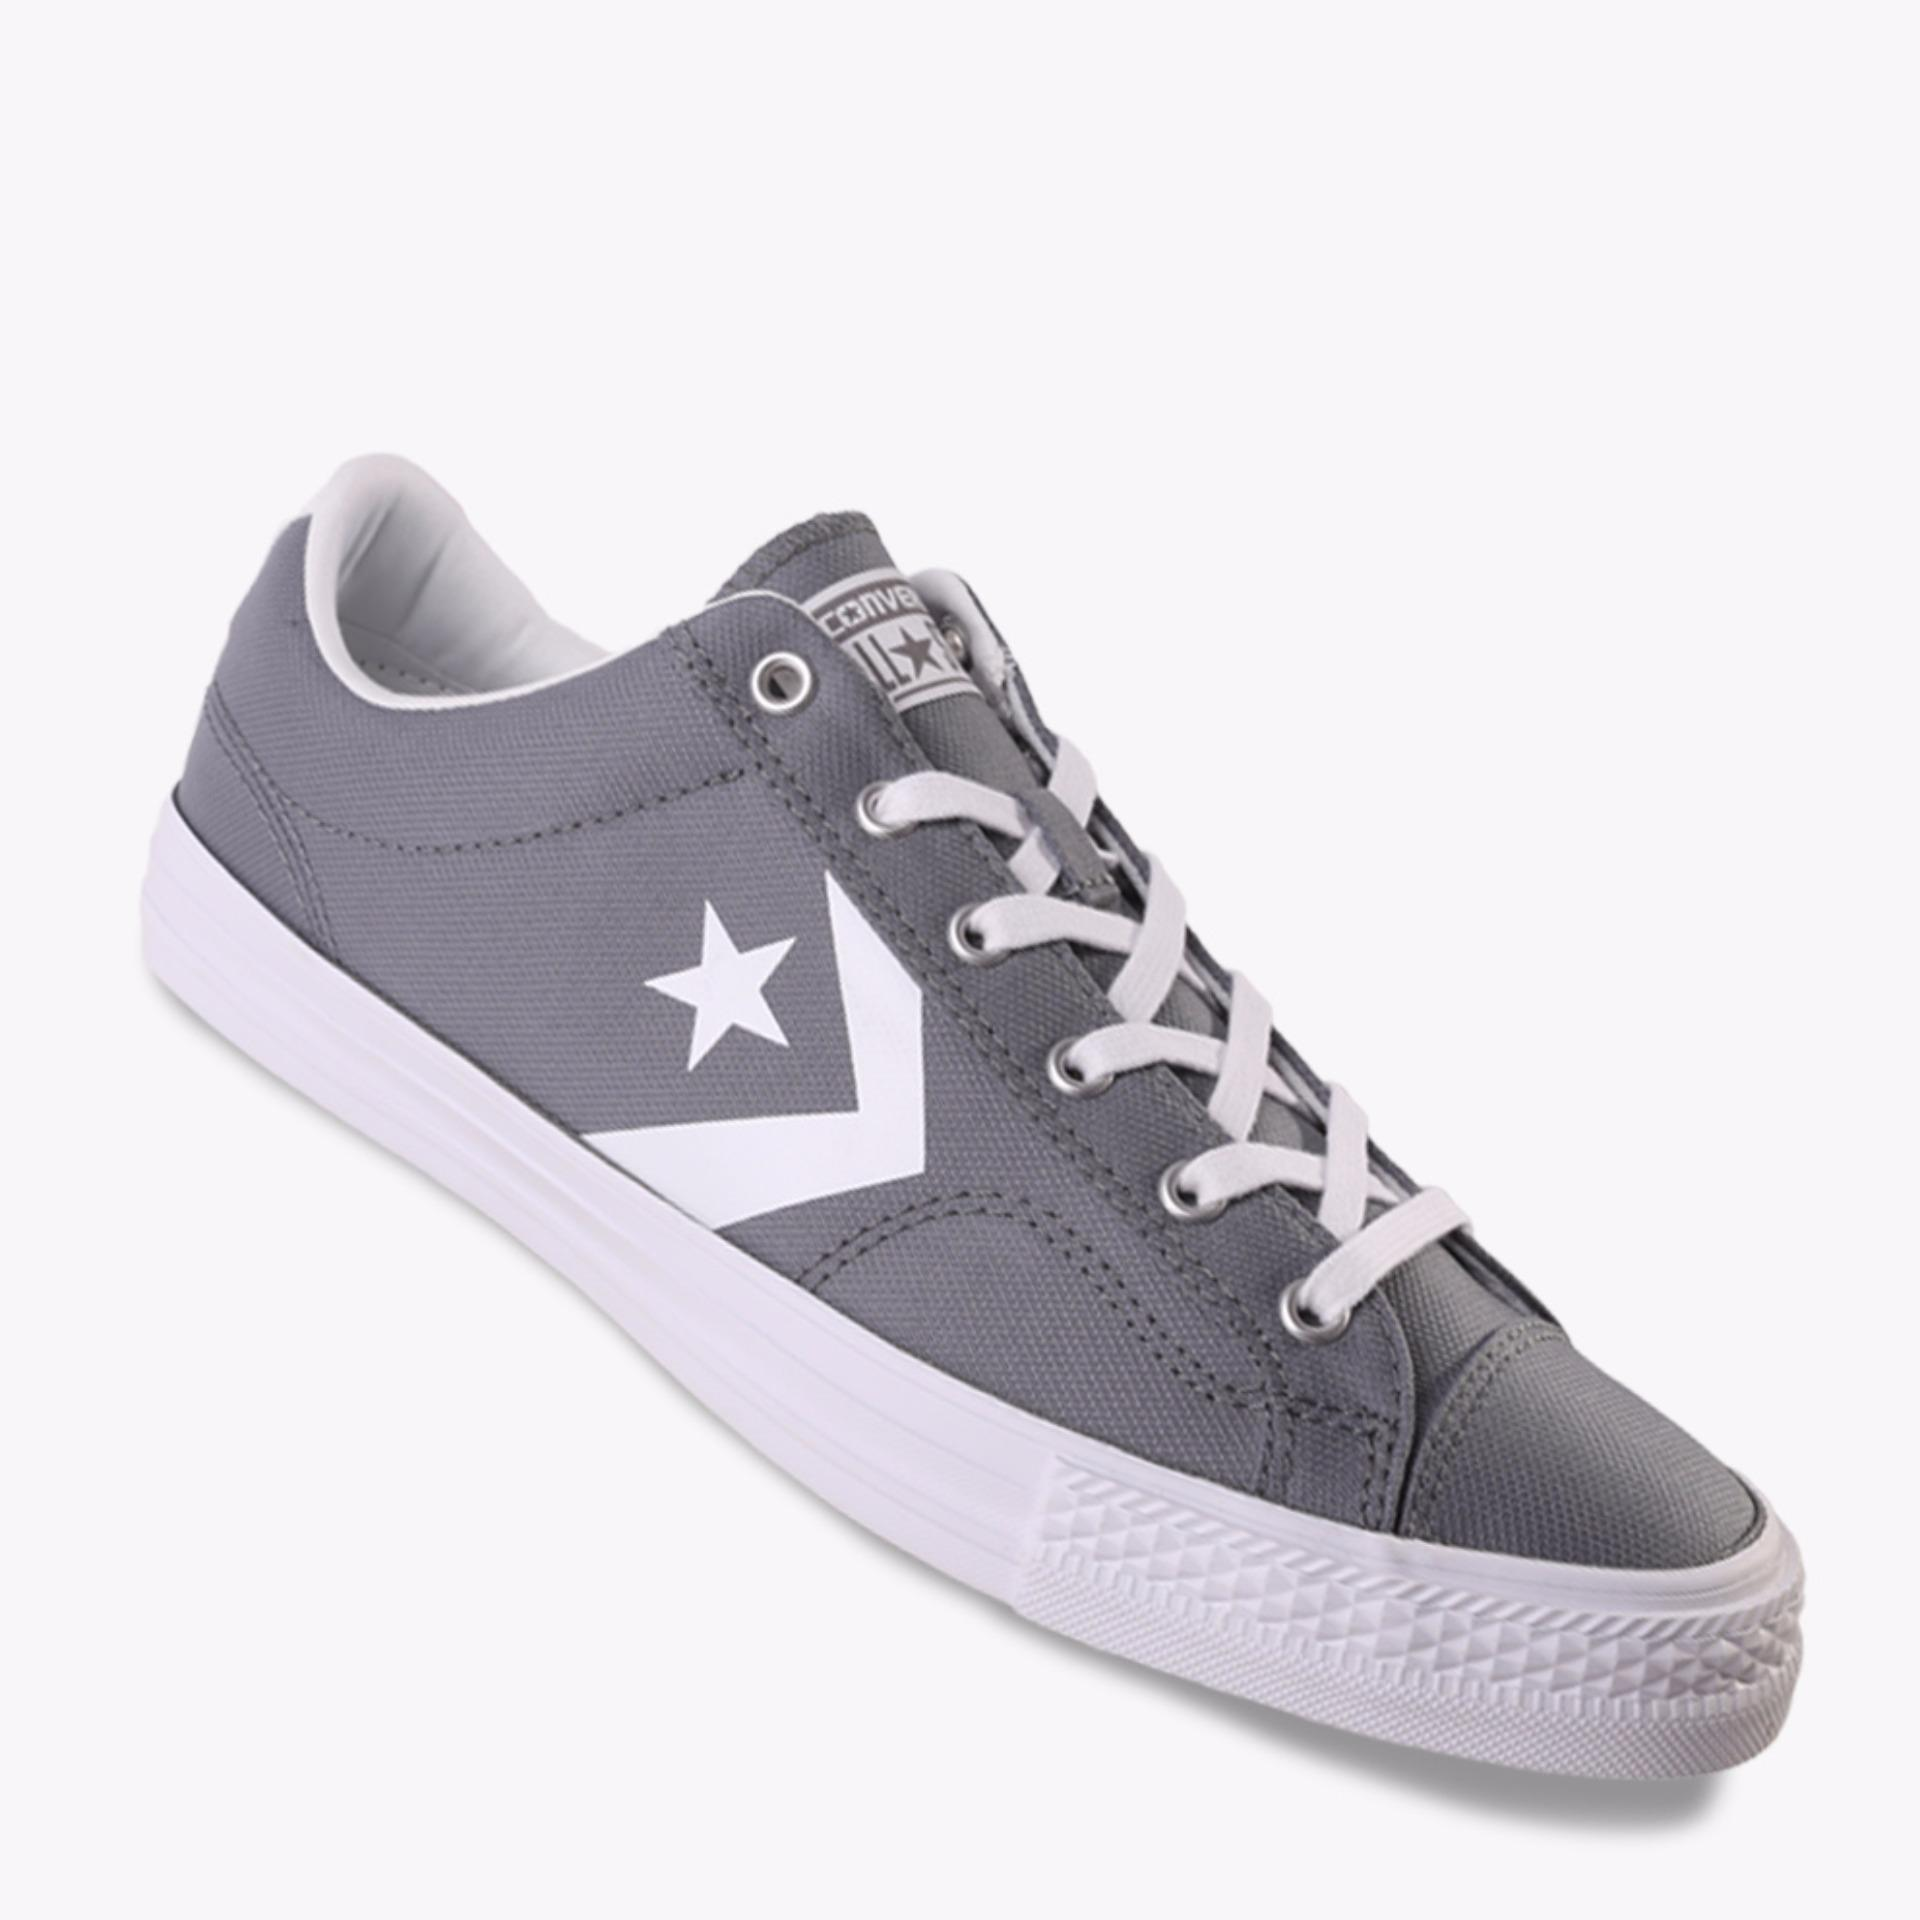 Beli Converse Star Player Ox Men S Sneakers Abu Abu Online Indonesia